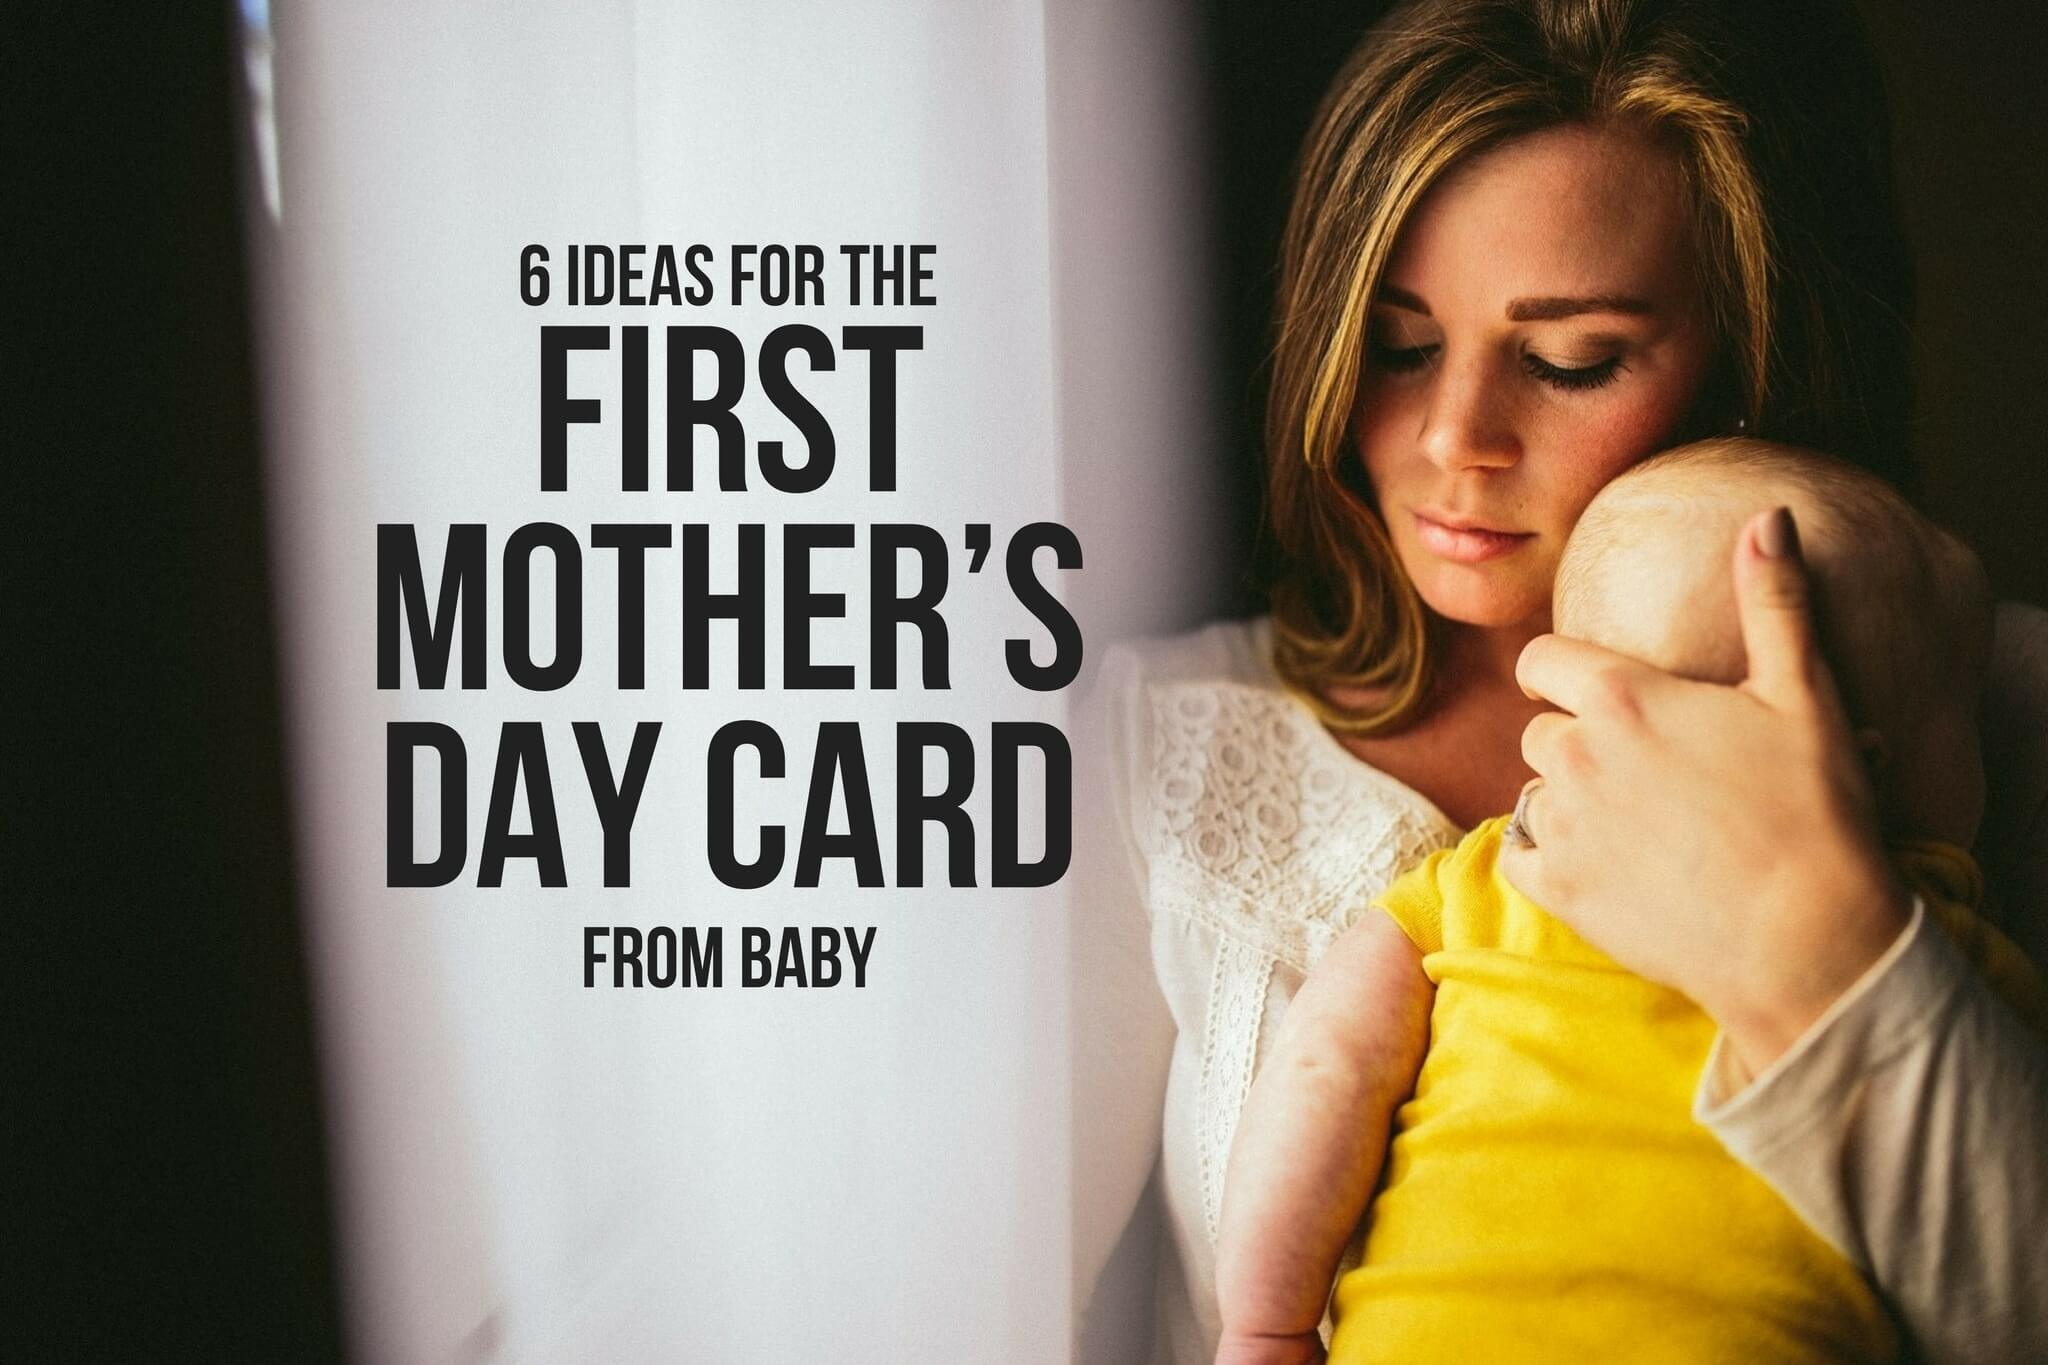 6 IDEAS FOR THE FIRST MOTHER'S DAY CARD FROM BABY